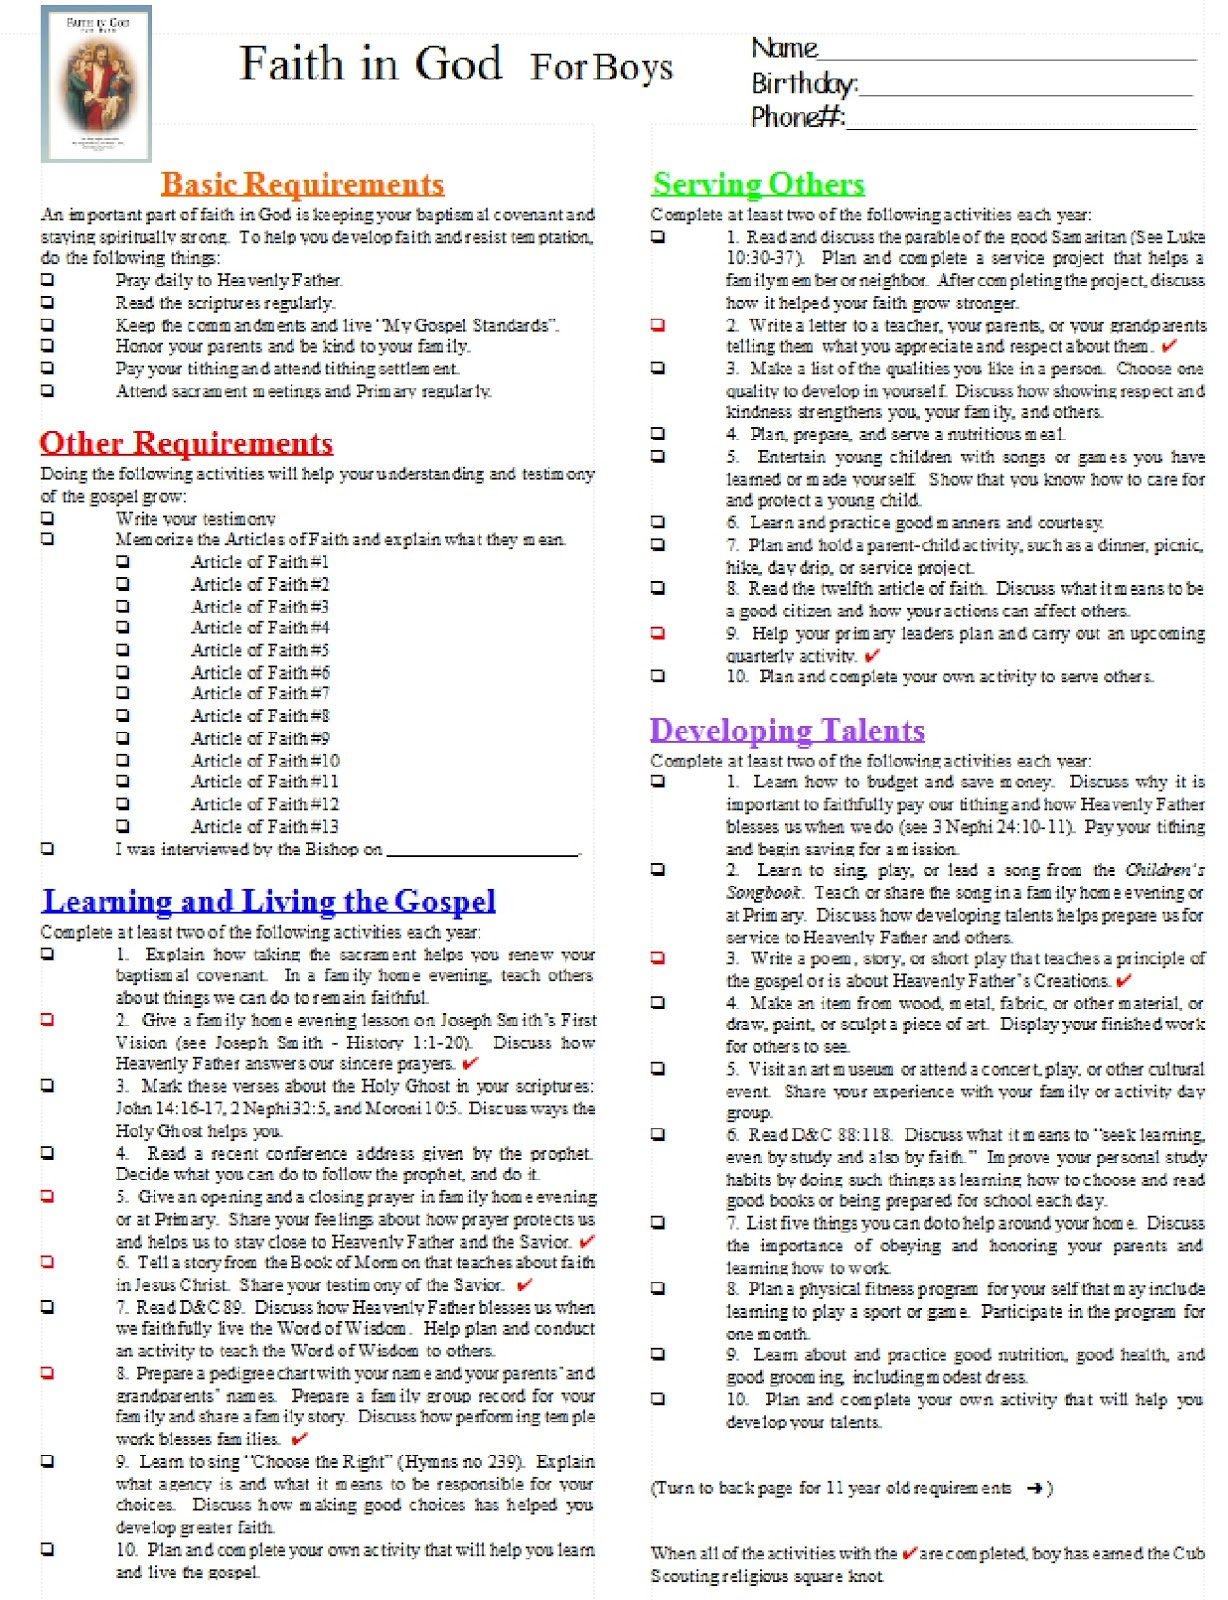 Worksheets Cub Scout Belt Loops Worksheets akelas council cub scout leader training religious although the picture shows quarterly activity as being a requirement for square knot actual pdf has been upda